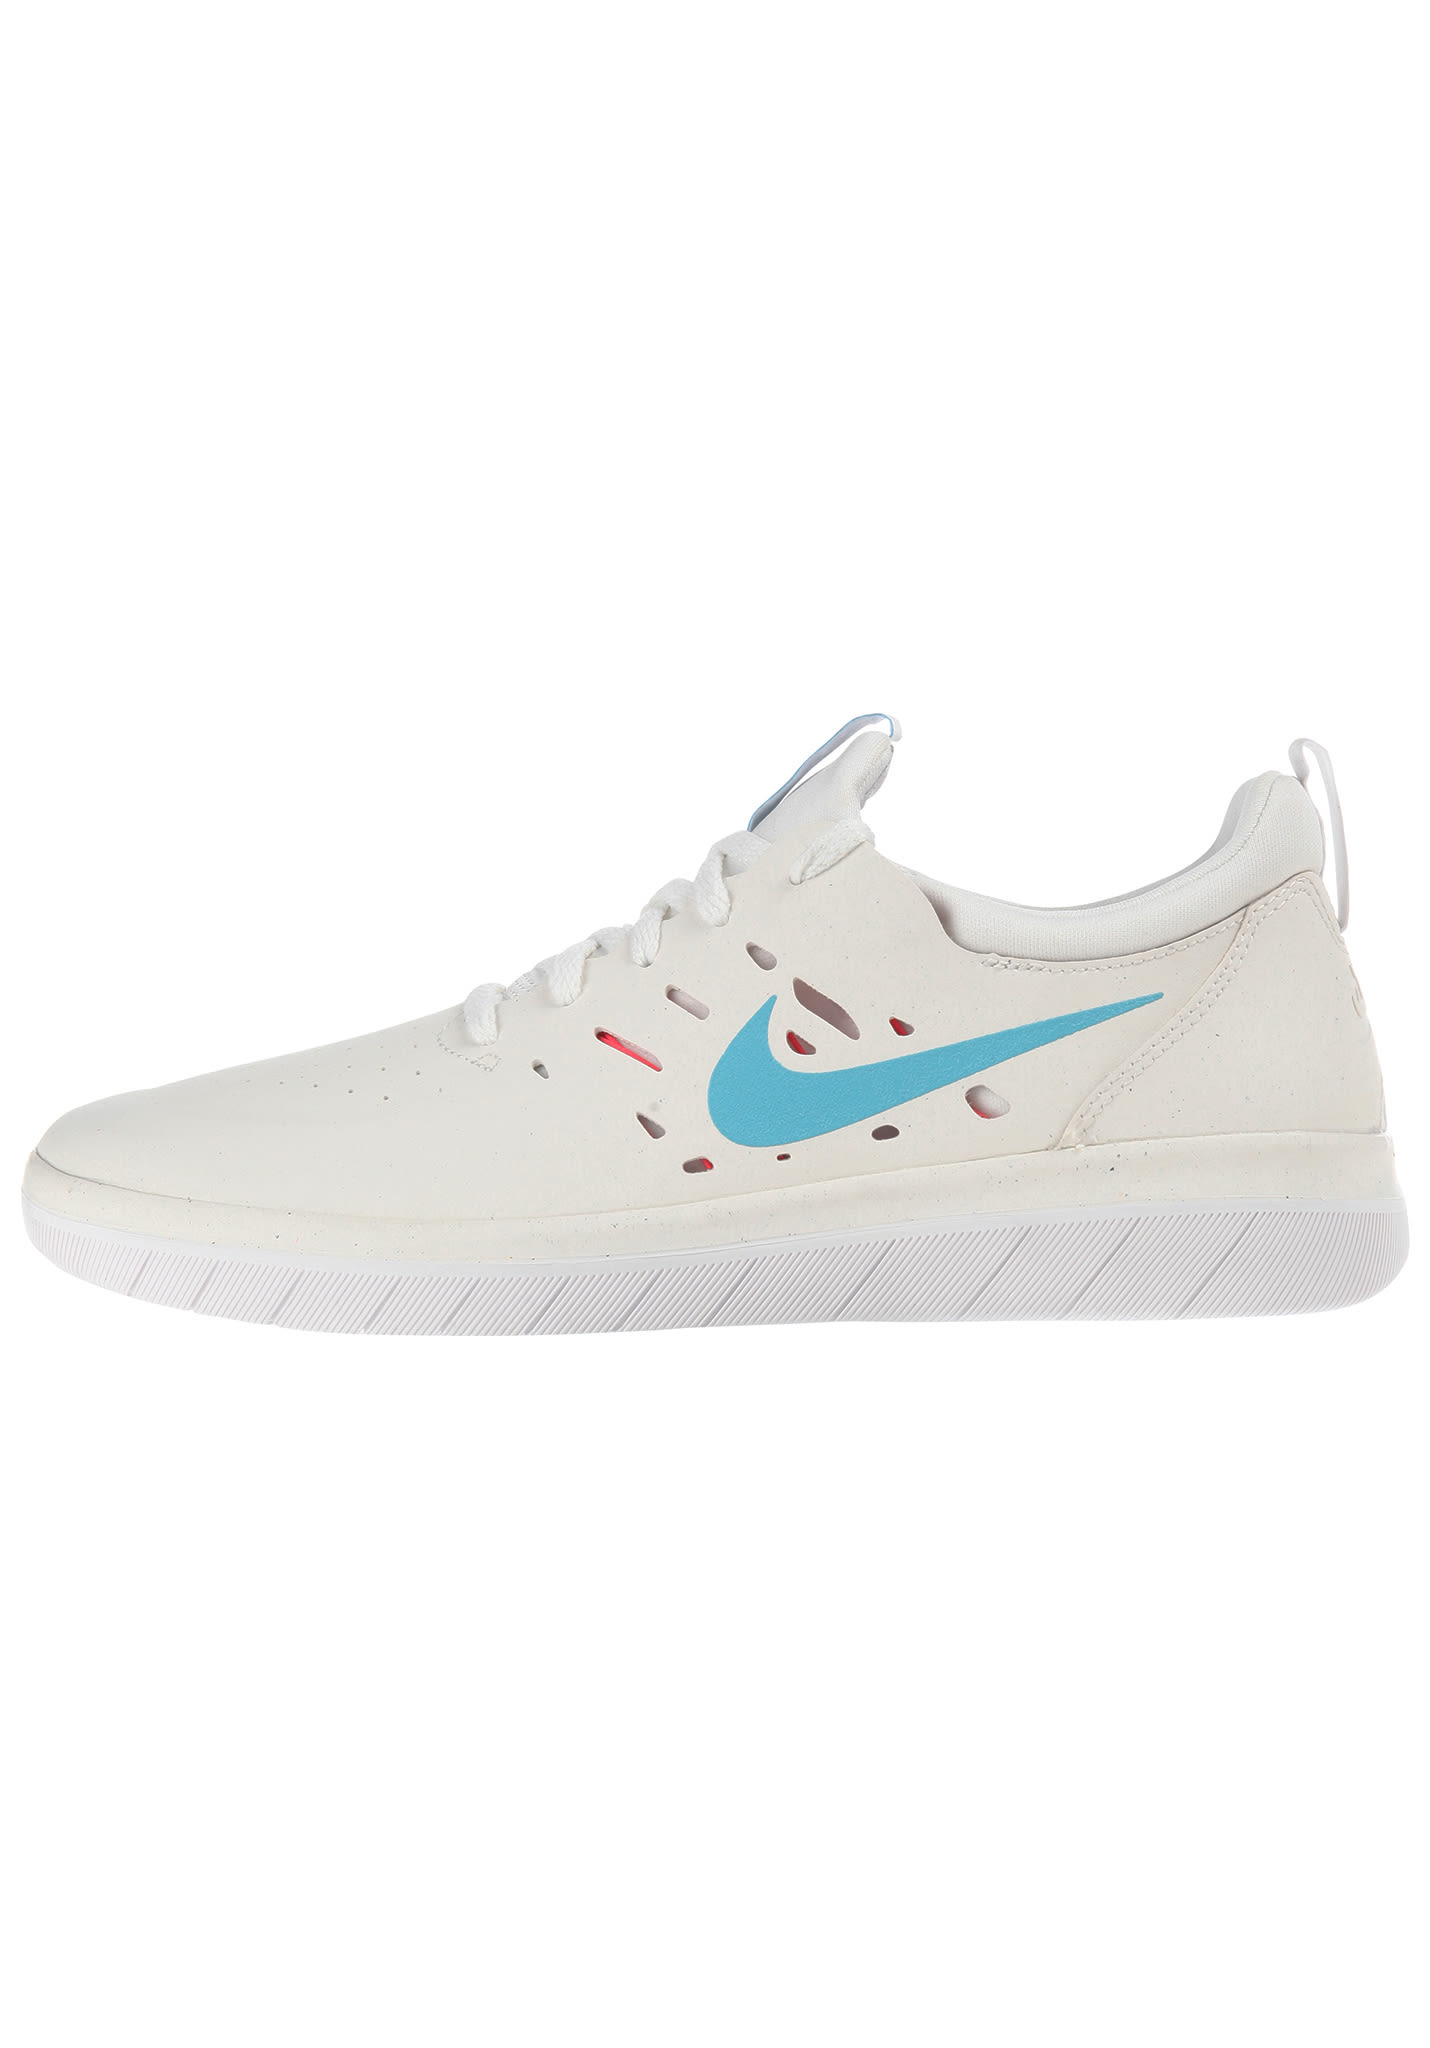 on sale 536e1 579f7 NIKE SB Nyjah Free - Sneakers for Men - White - Planet Sports